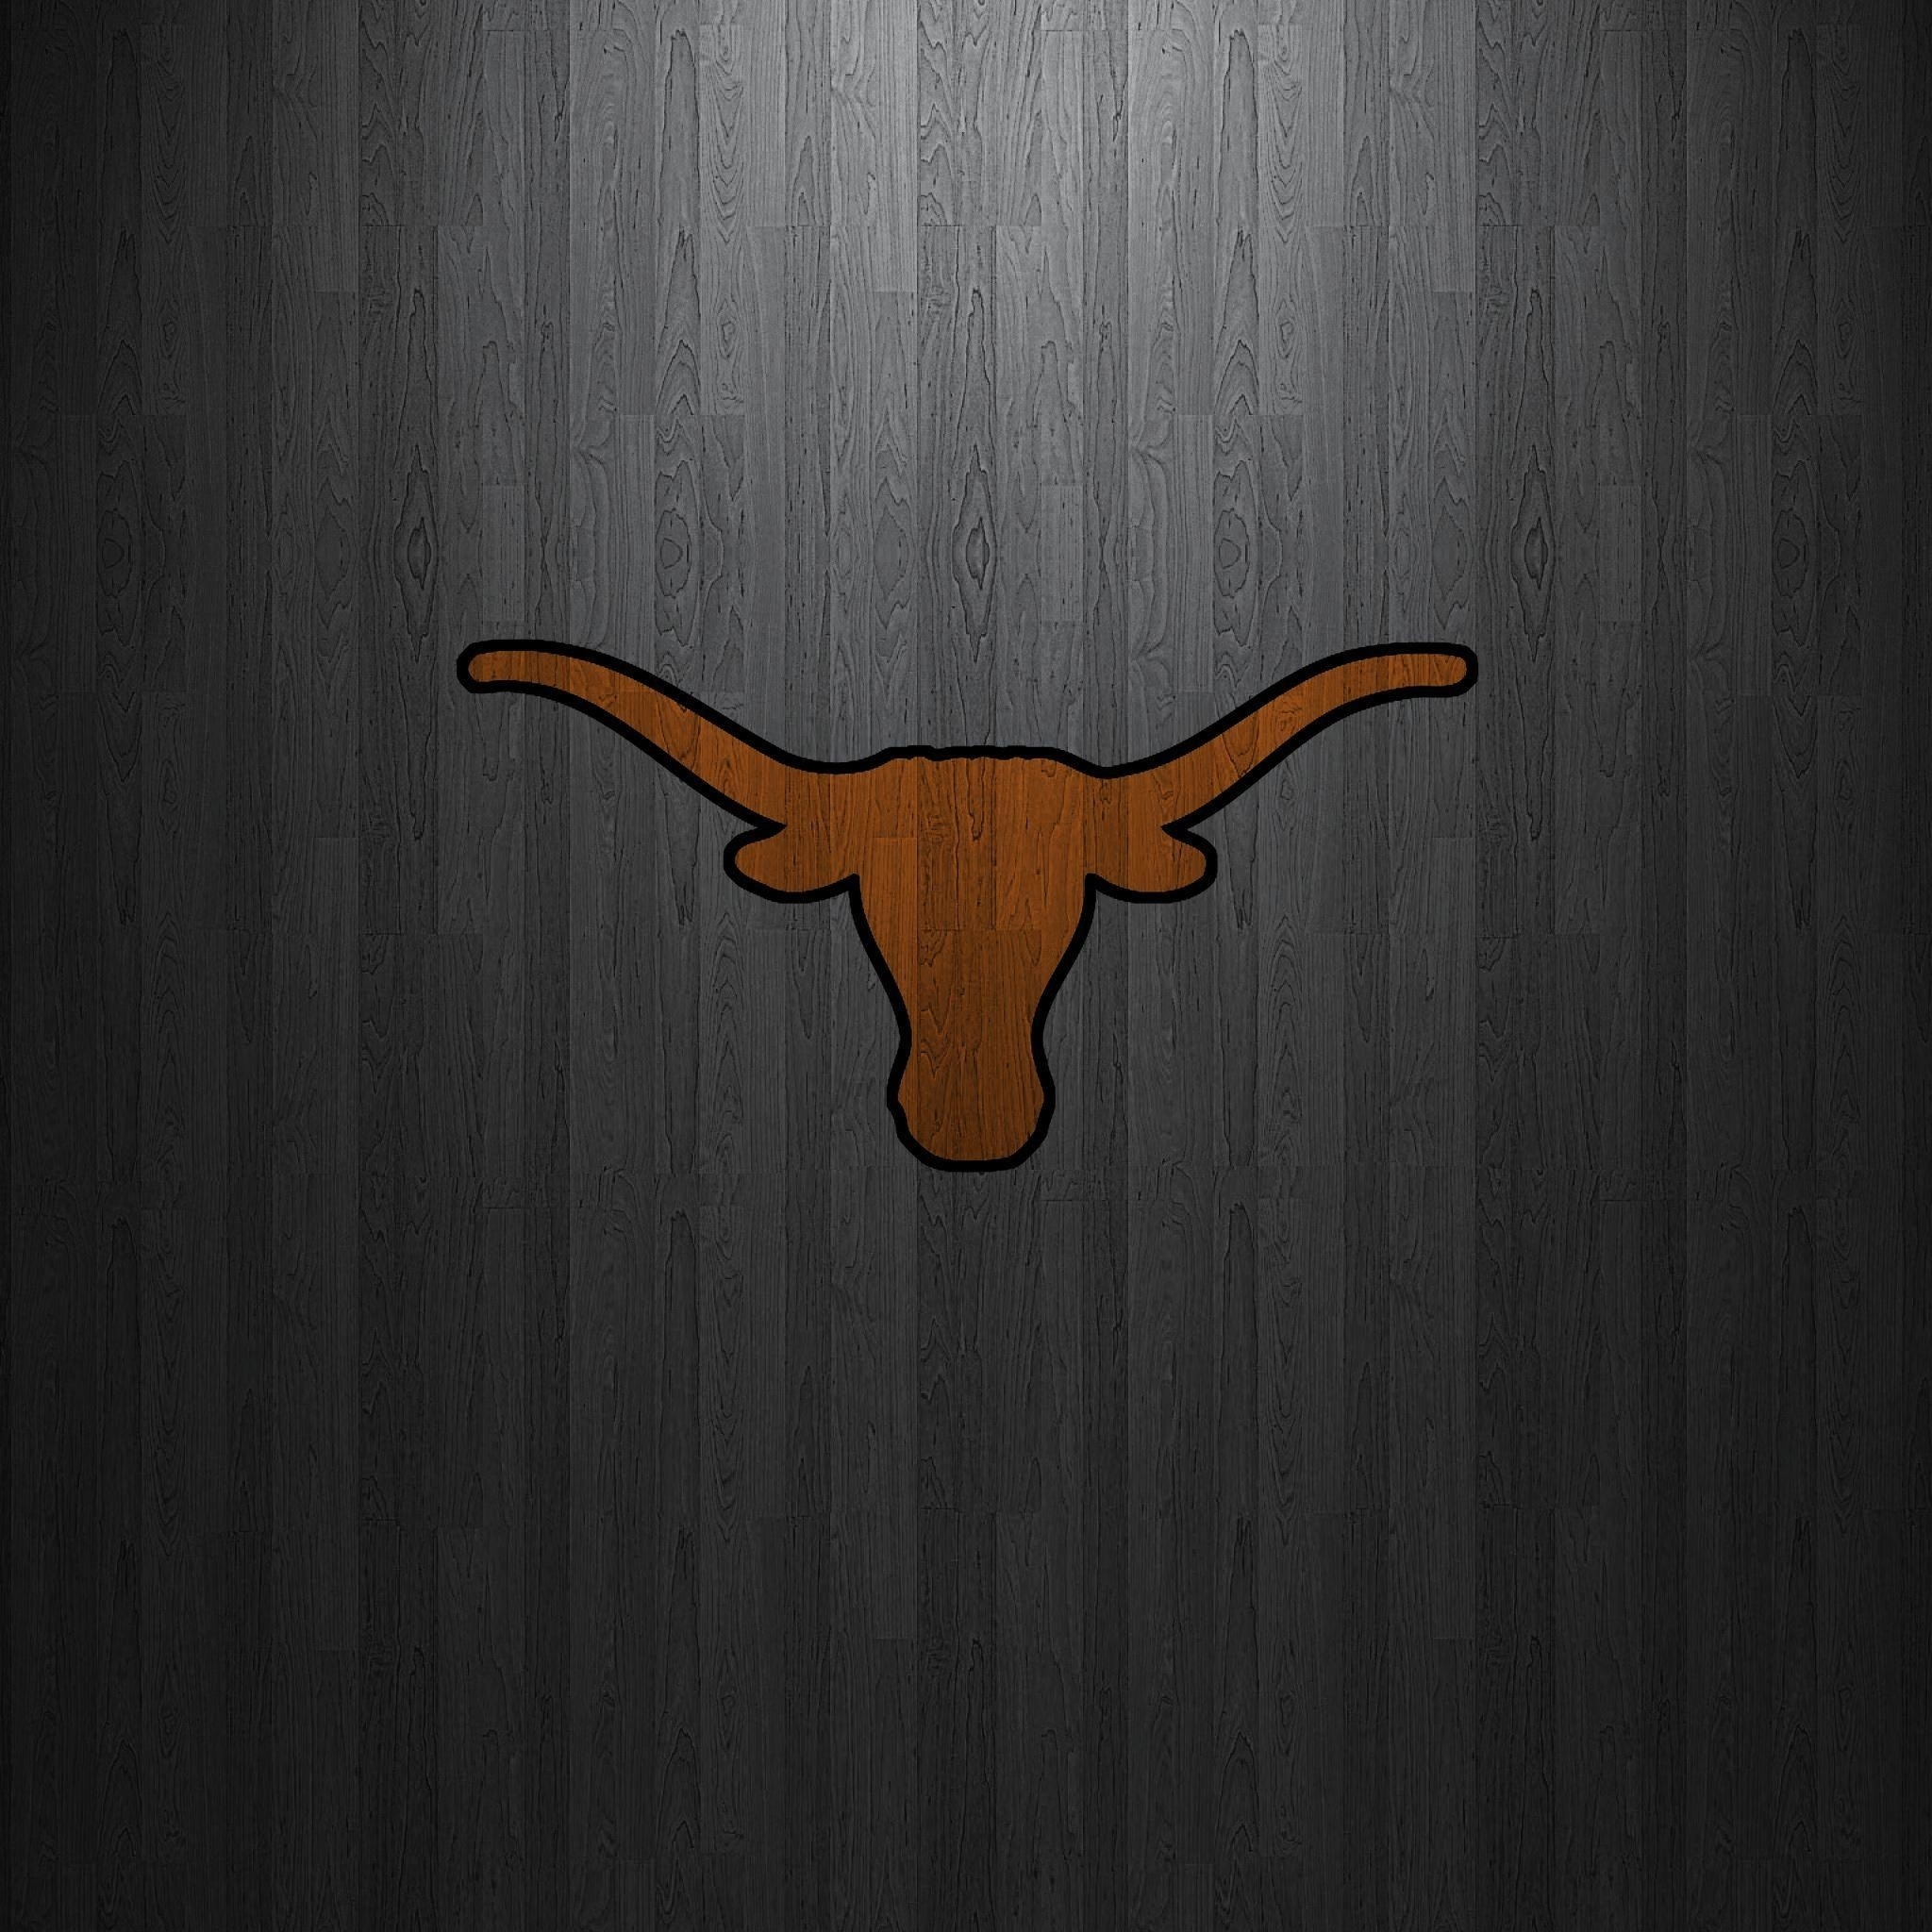 texas longhorns iphone wallpaper (51+ images)